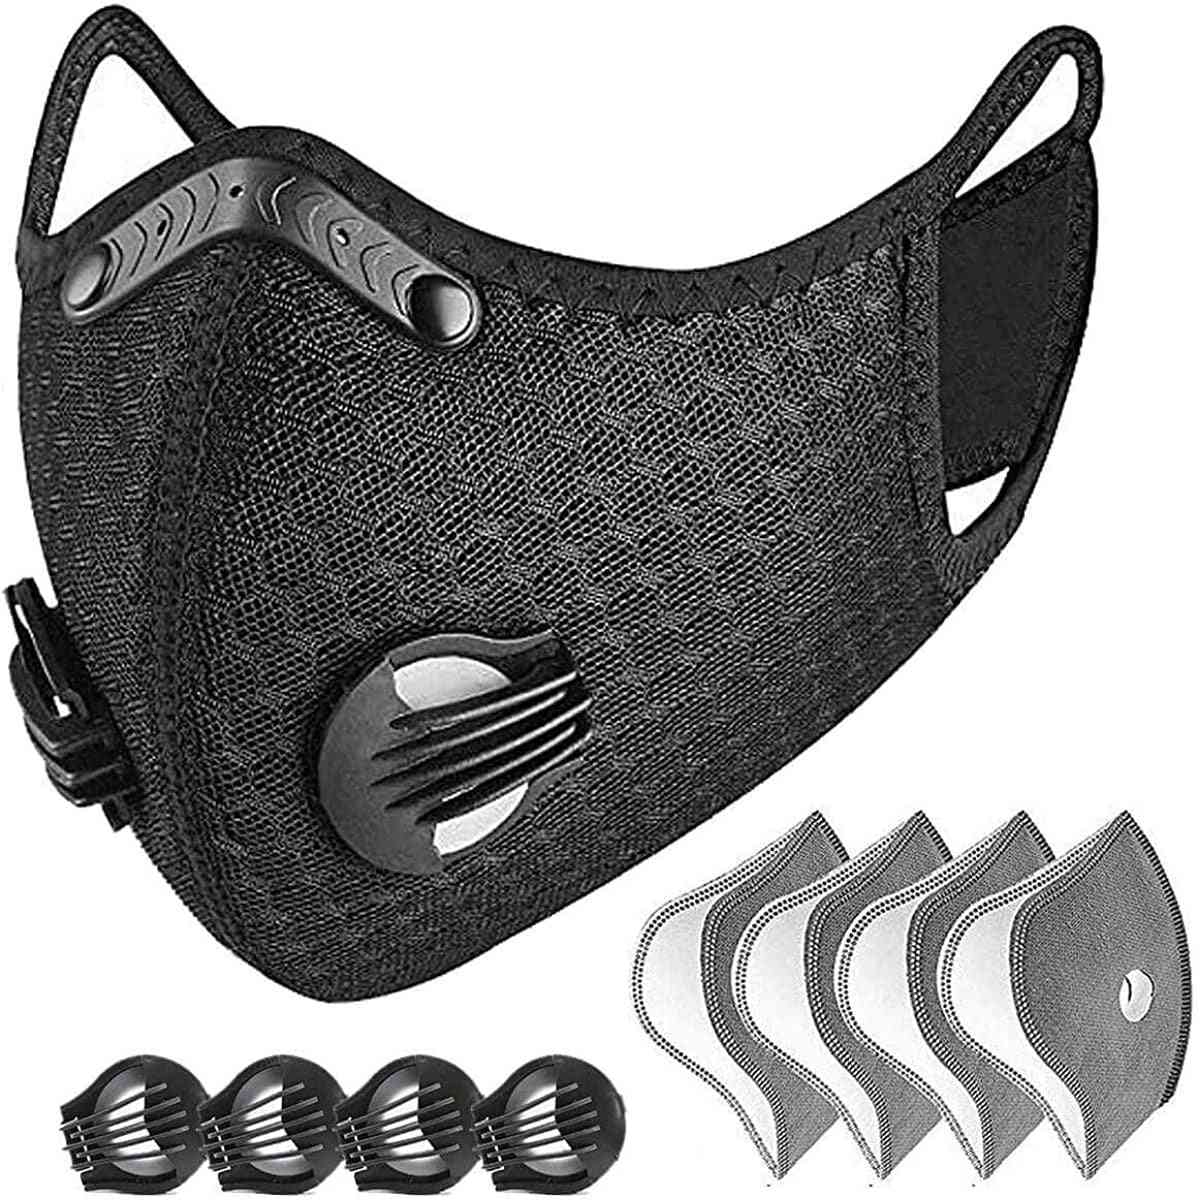 Reusable, Dustproof Respirator Face Mask With 4 Filters And Exhaust Valves